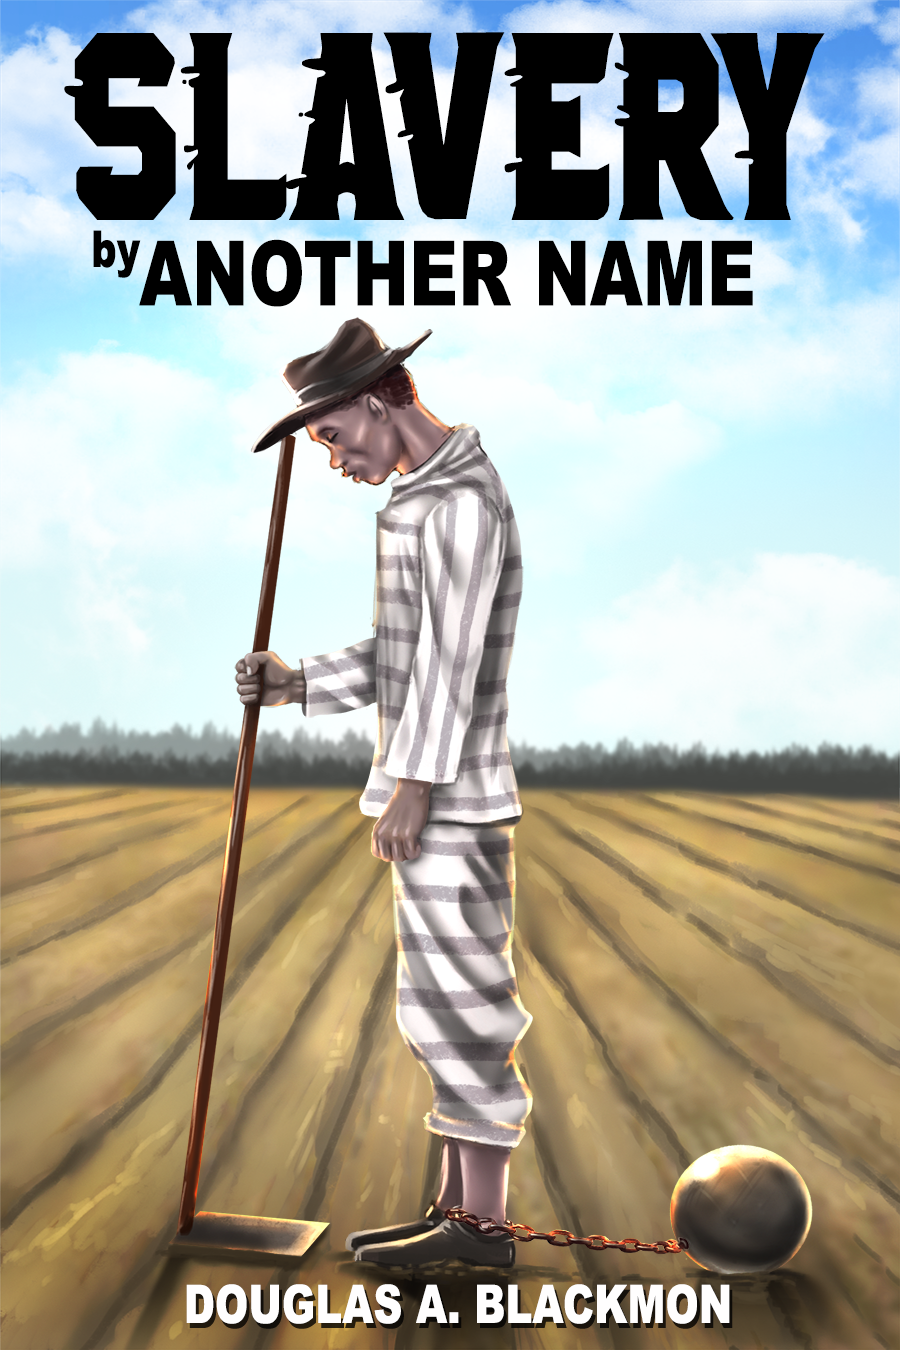 Need Artists to Create Multiple E-Book Covers from Original Art with NO STOCK ART